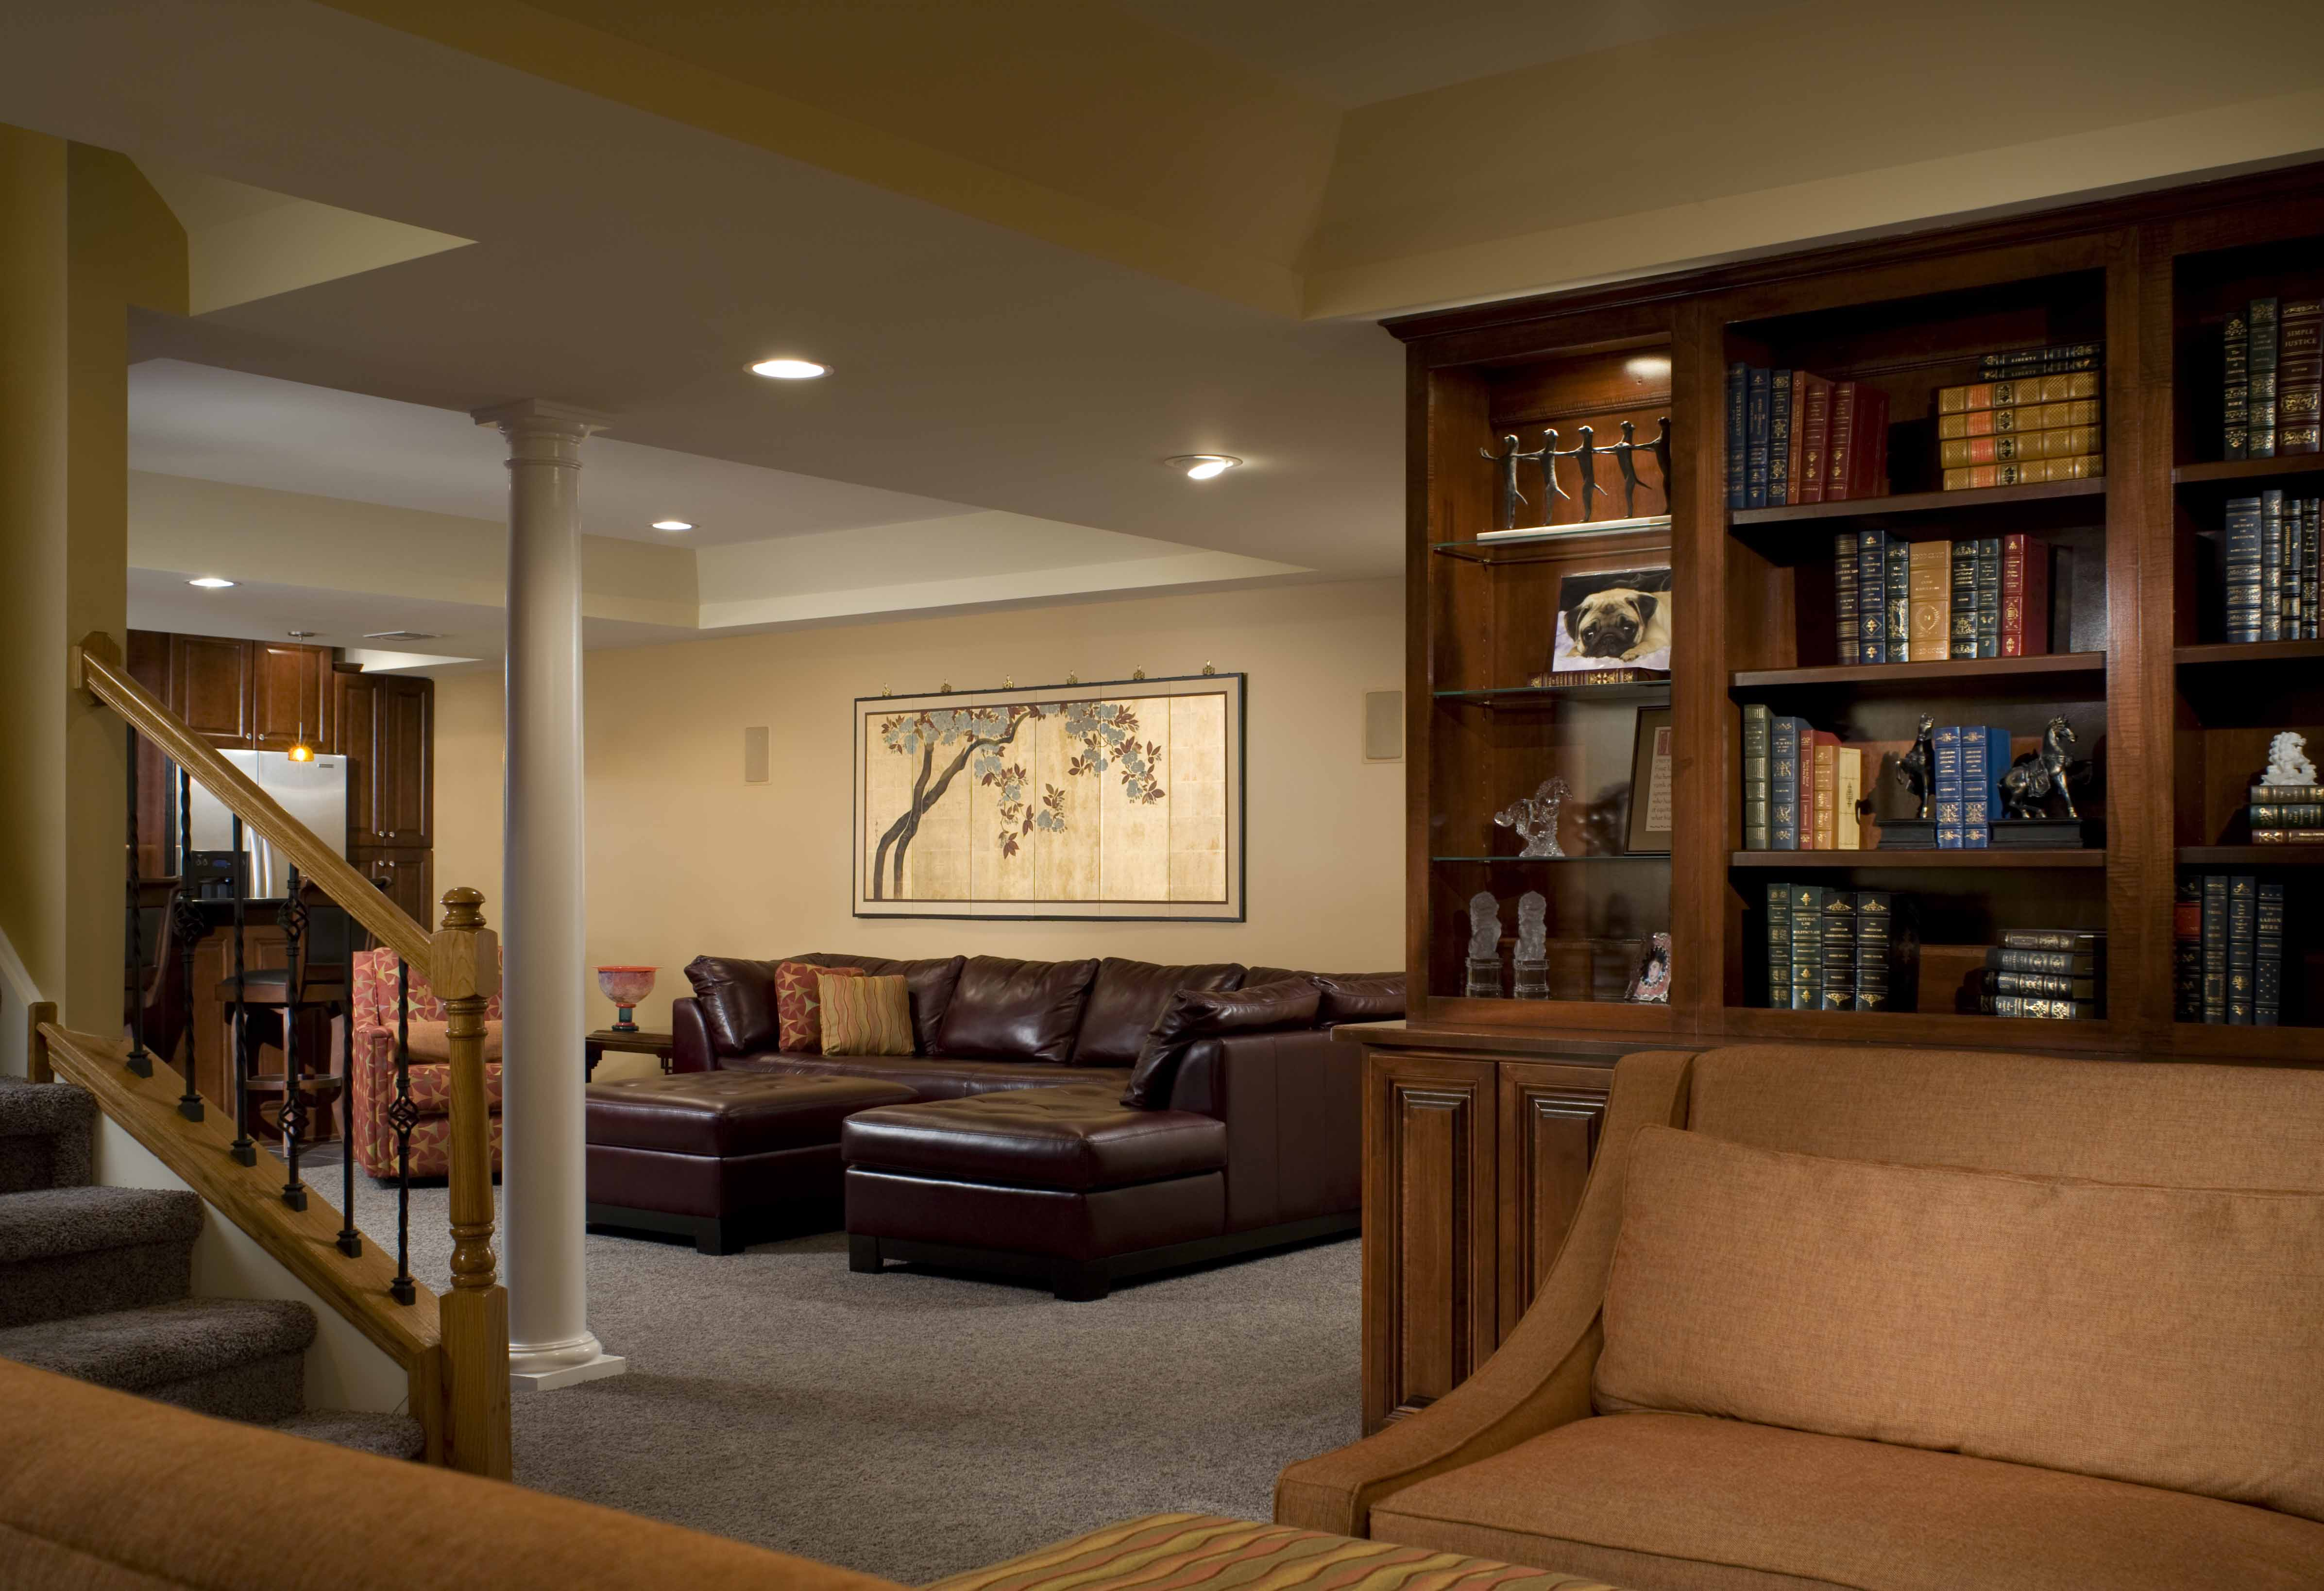 Family Room with Built-In Bookshelves.jpg